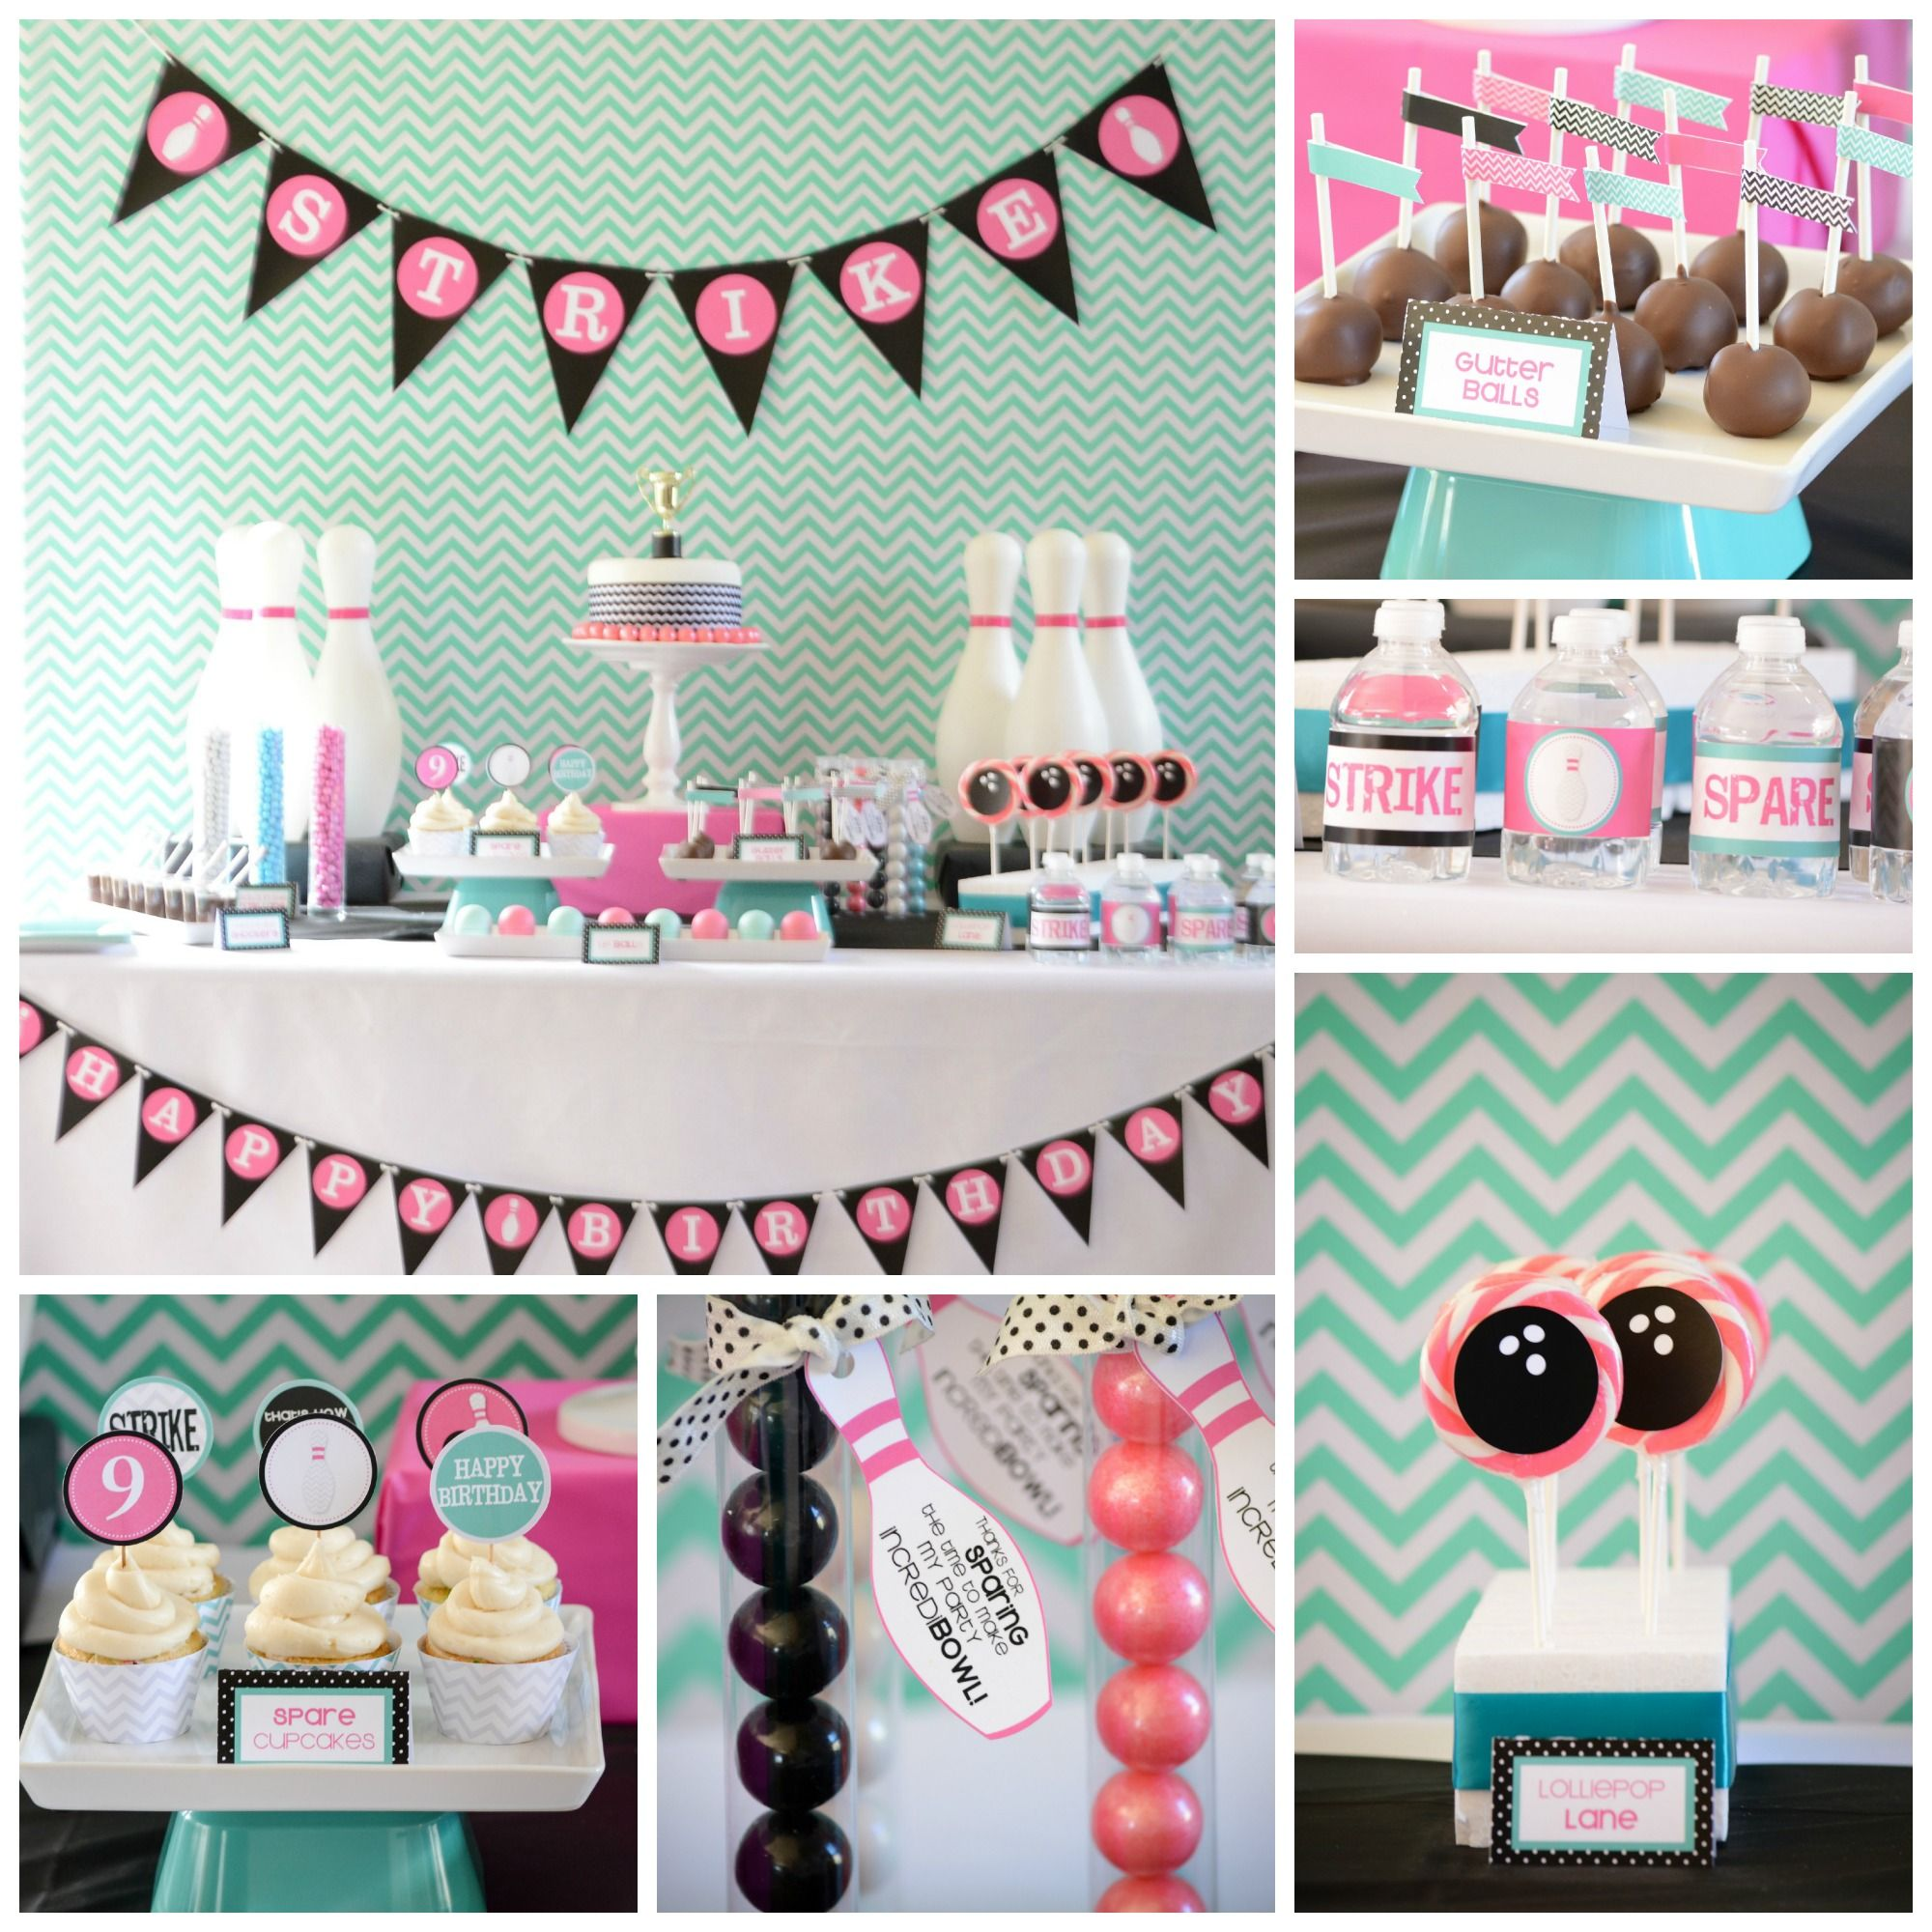 Bowling Birthday Party Ideas And Tips Pretty Perfect Party Ideas Bowling Birthday Party Bowling Party Bowling Party Ideas Girls